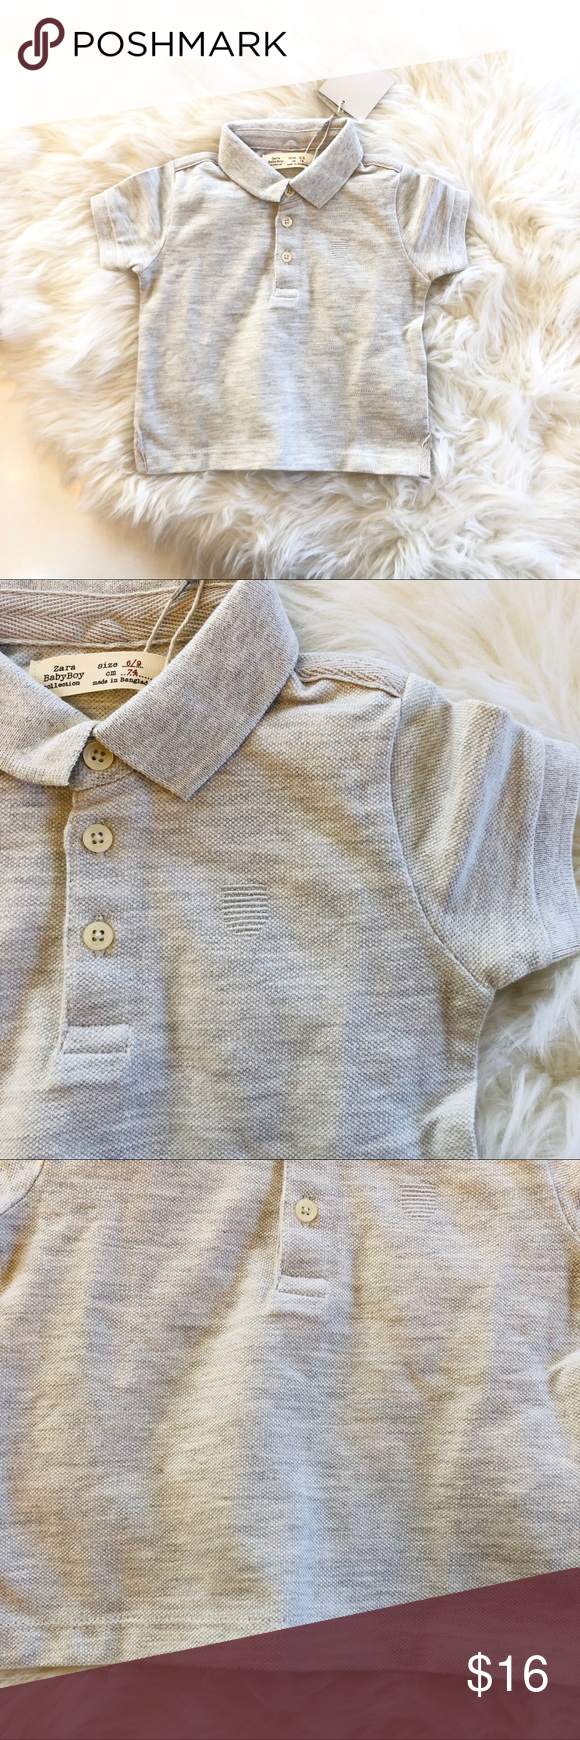 b39170245 NWT Zara Baby Polo Shirt NWT Zara Baby Polo Shirt in light gray. Size 6-9  months NEW WITH TAGS E2-0489 Zara Shirts & Tops